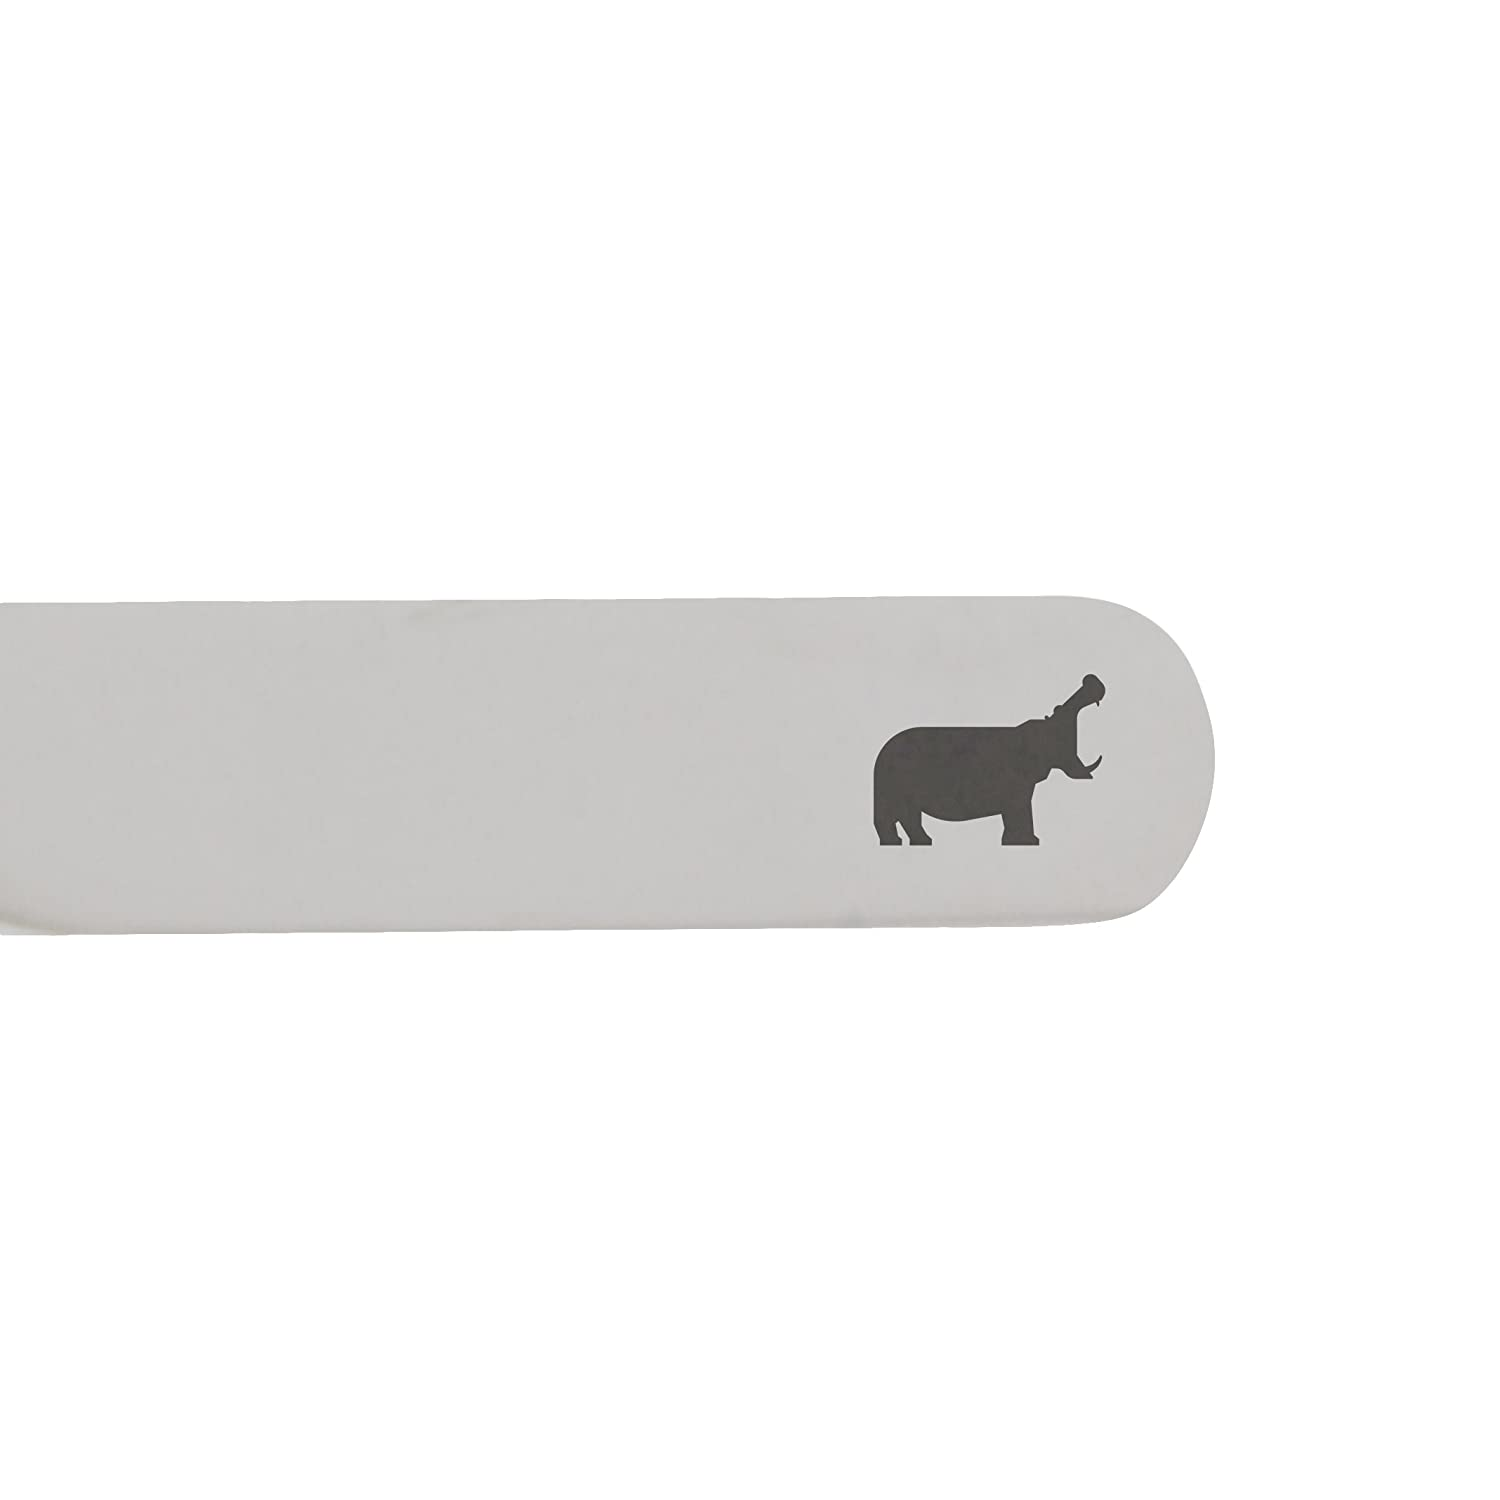 2.5 Inch Metal Collar Stiffeners MODERN GOODS SHOP Stainless Steel Collar Stays With Laser Engraved Hippo Design Made In USA